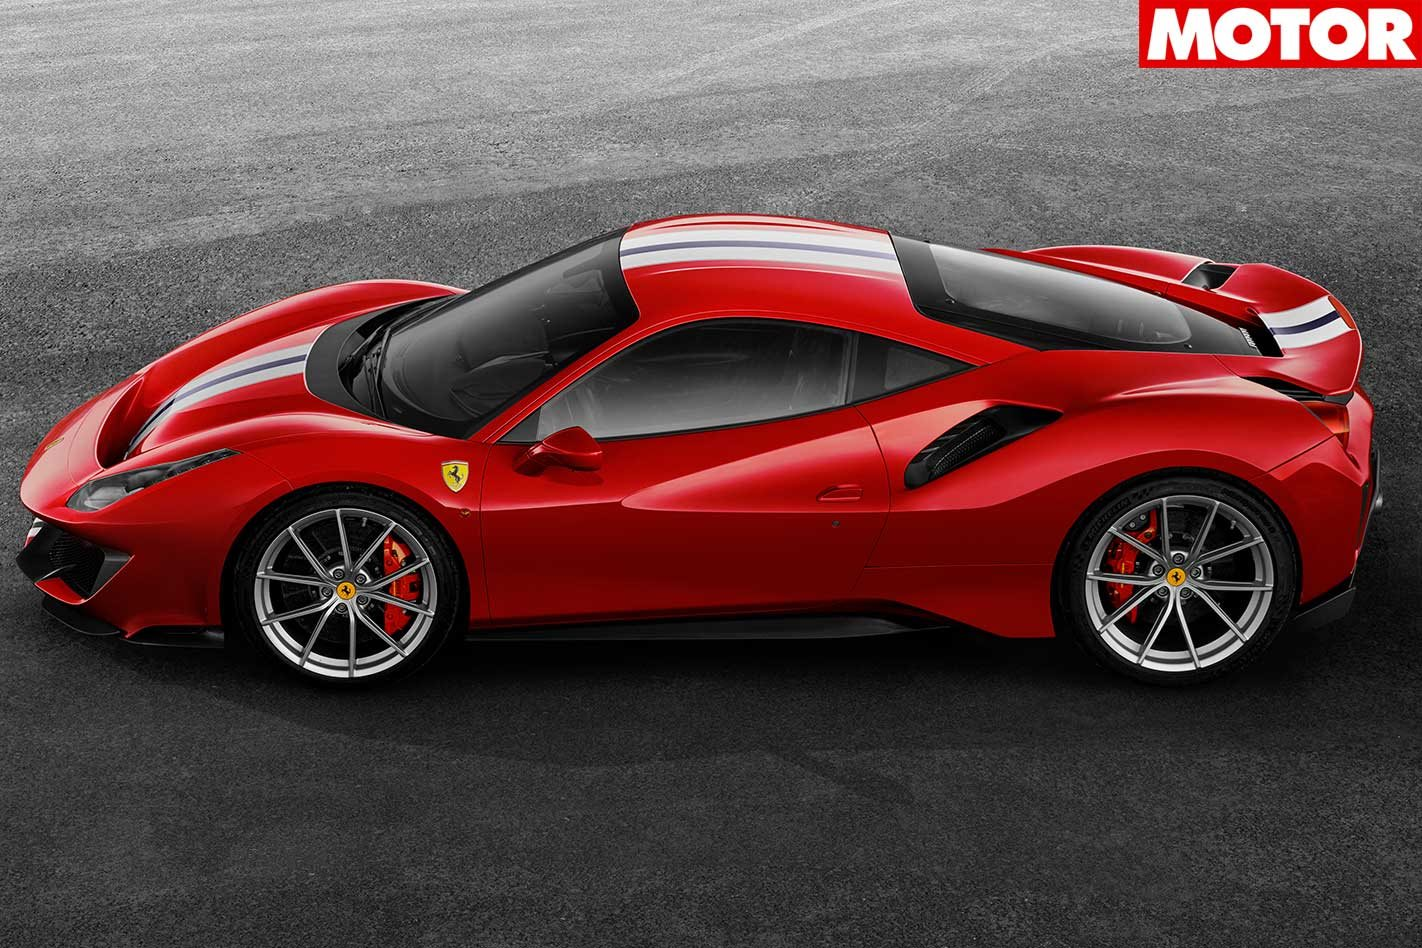 New Ferrari 488 Pista gets race-derived V8 engine